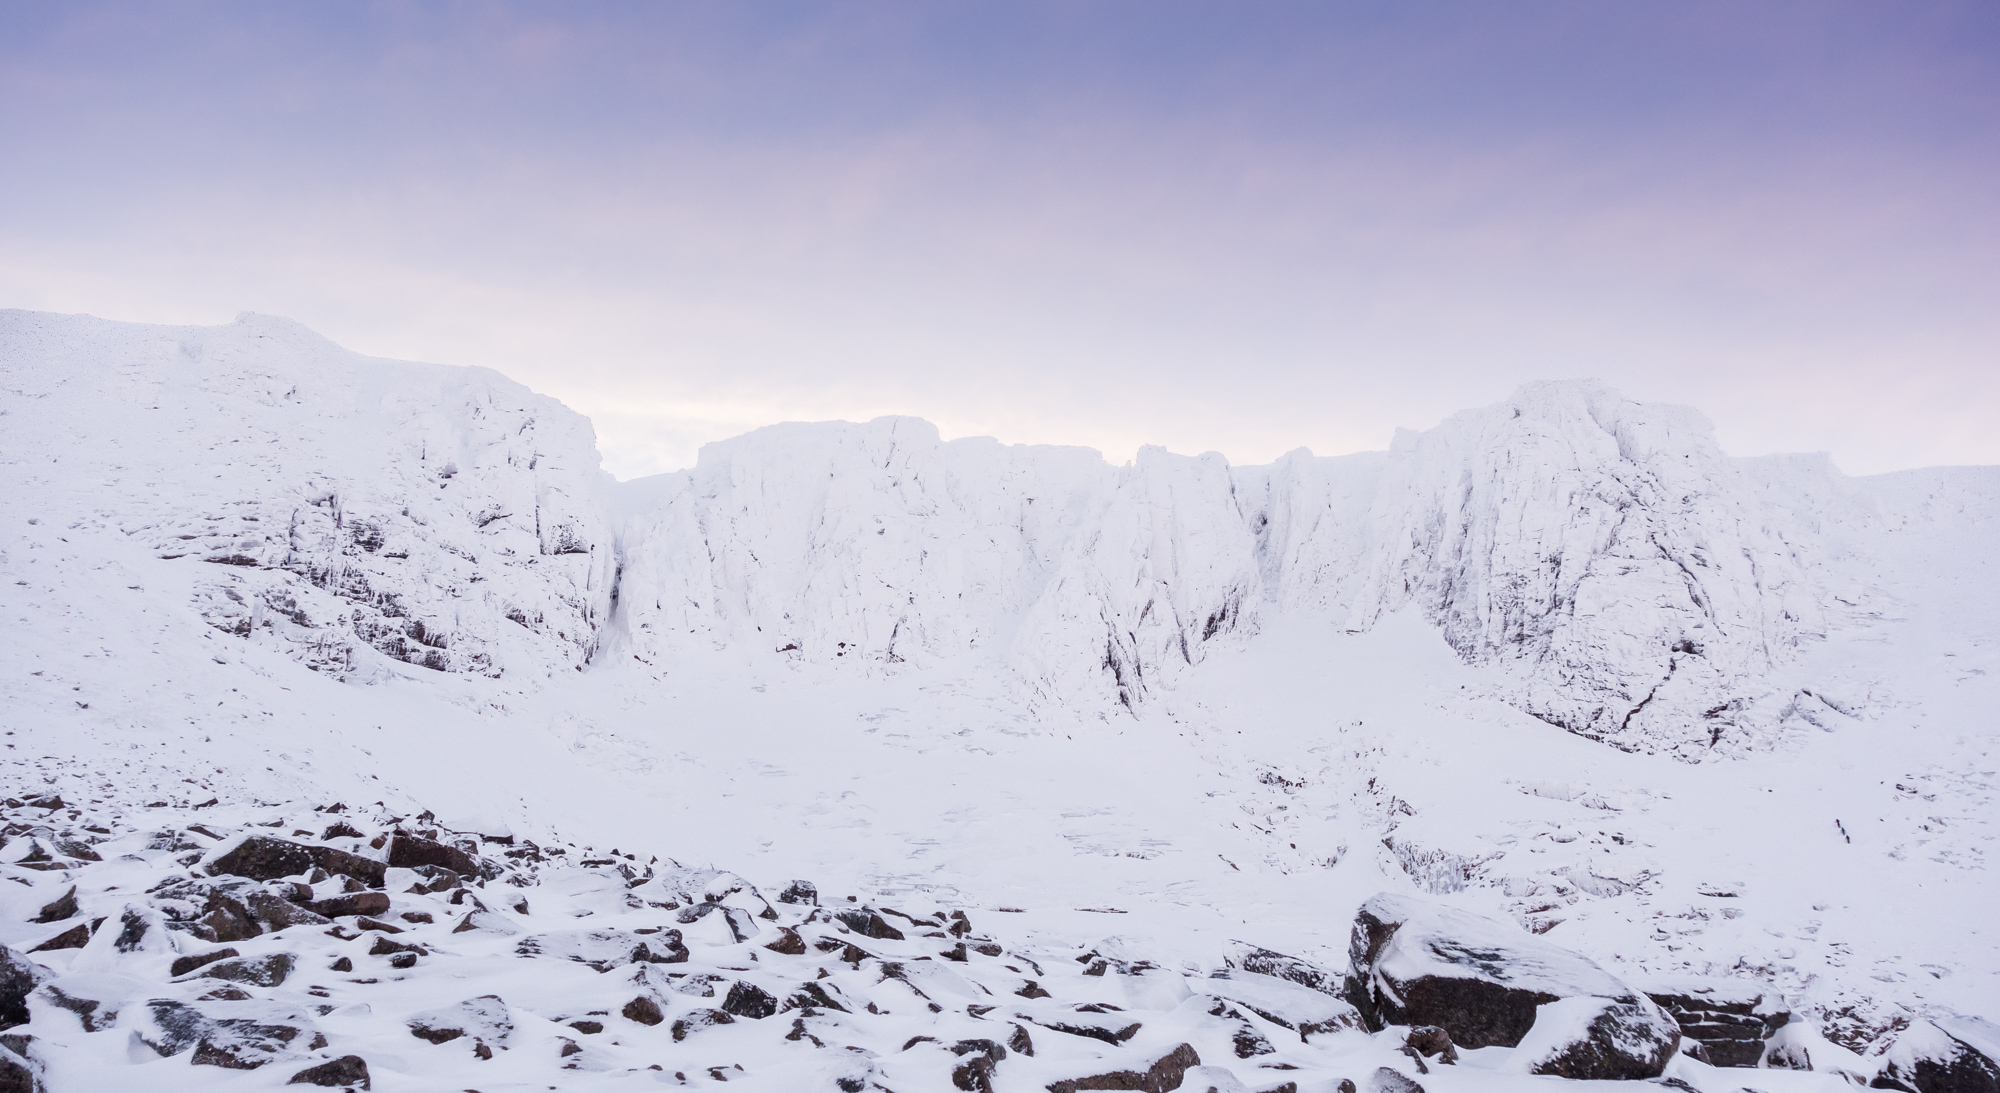 Dawn over a very white Coire an Lochain. No1 buttress on the left looking marginally less buried.